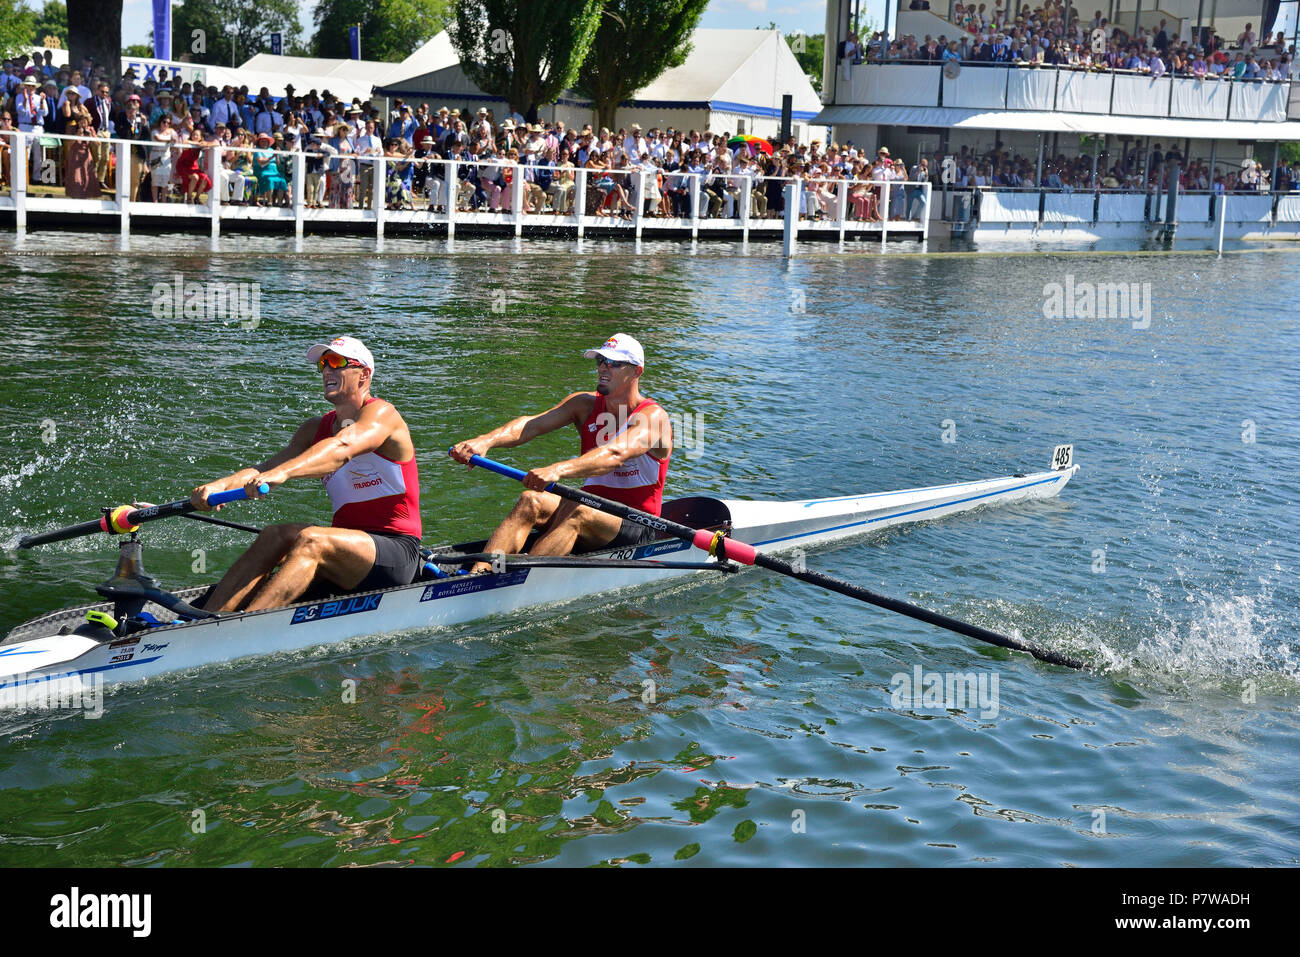 Henley-on-Thames, UK. 08th July, 2018. In the Silver Goblets the Olympic Champions in the double sculls Martin and Valent Sinkovic from Croatia were led to the barrier by Watts and Widdicombe of the Georgina Hope Rinehart National Training Centre, Australia.  However the Sinkovic brothers rowed through the Aussies to ultimately win with an easily verdict and breaking the course record by two seconds.  This record was previously held by Redgrave and Pinsent,  and Reed and Triggs Hodge. Credit Wendy Johnson/Alamy Live News Stock Photo